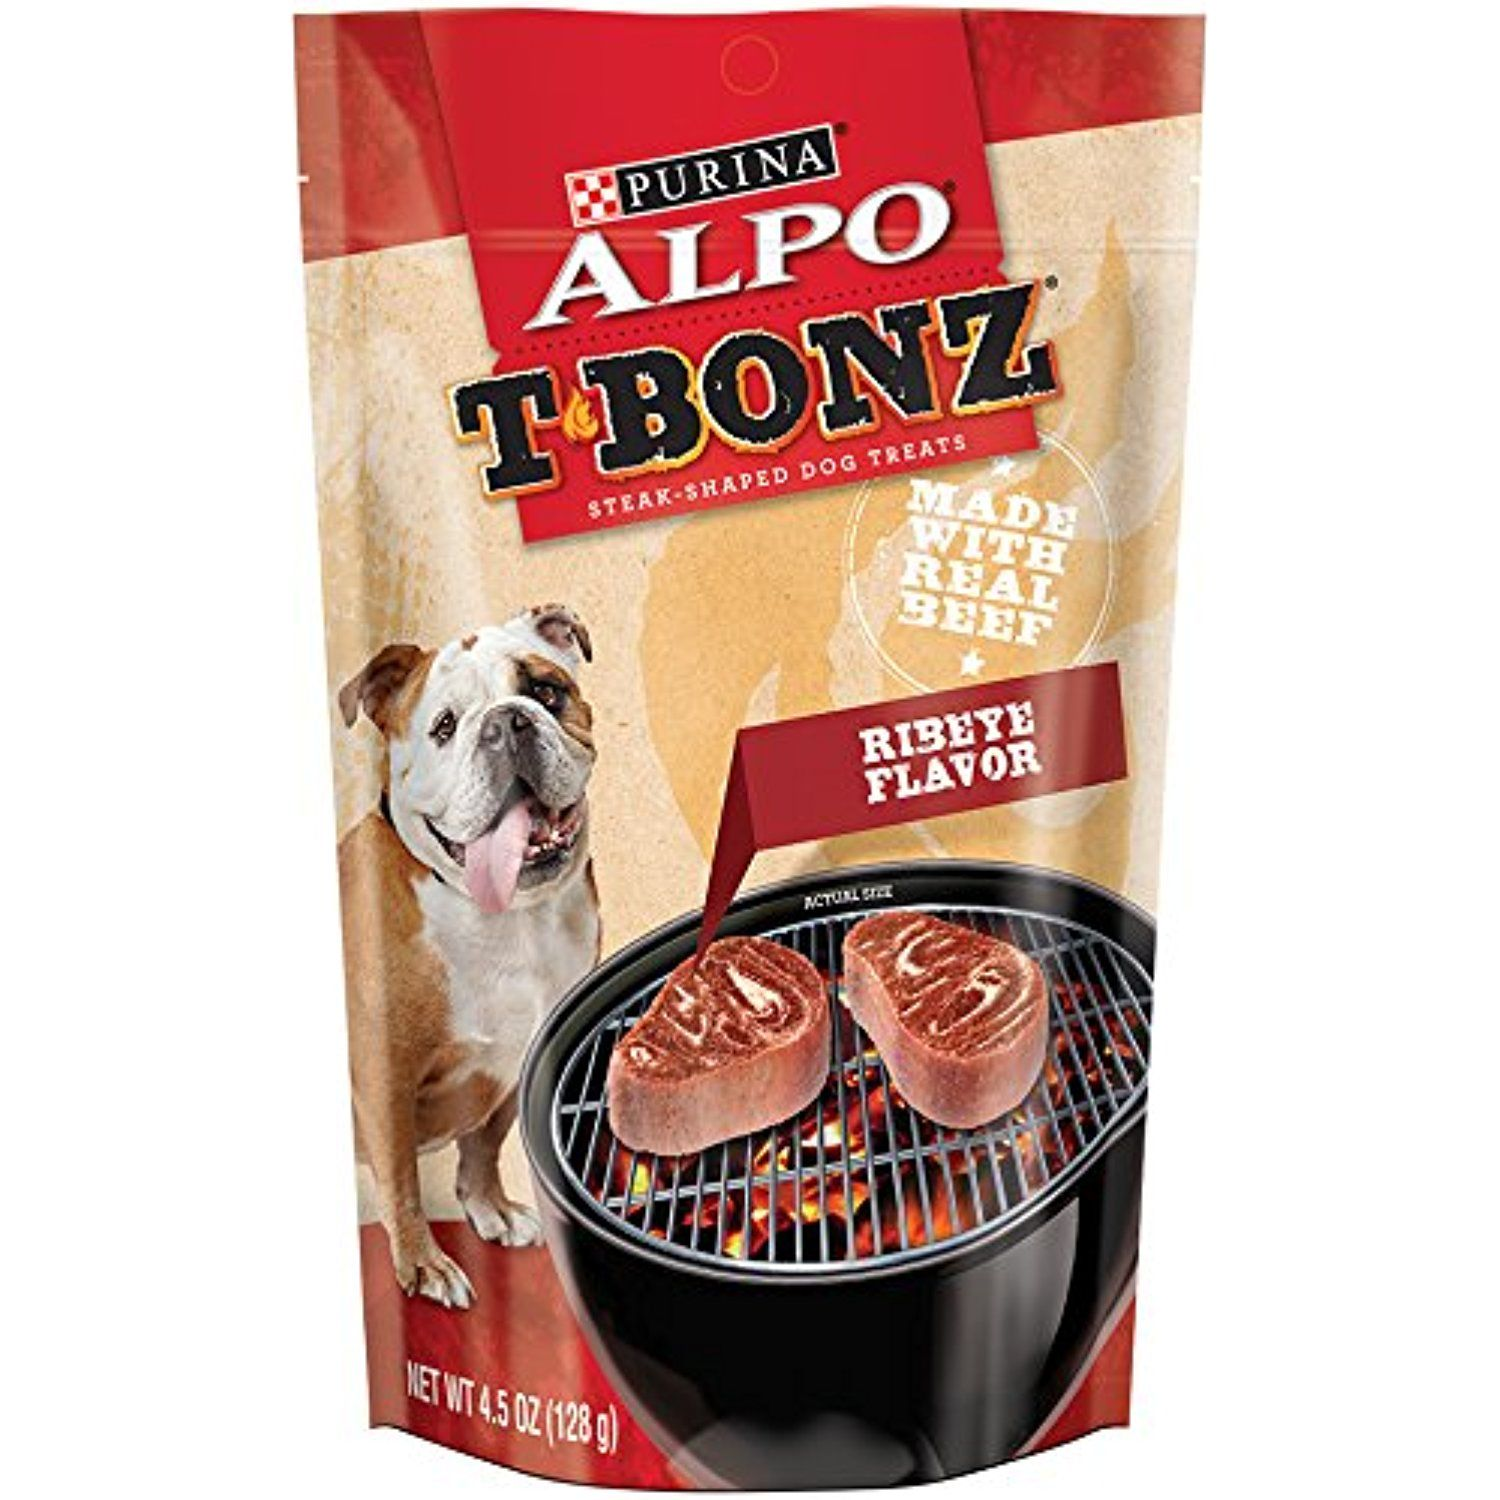 Purina ALPO TBonz Brand Dog Treats, Ribeye Flavor, Steak